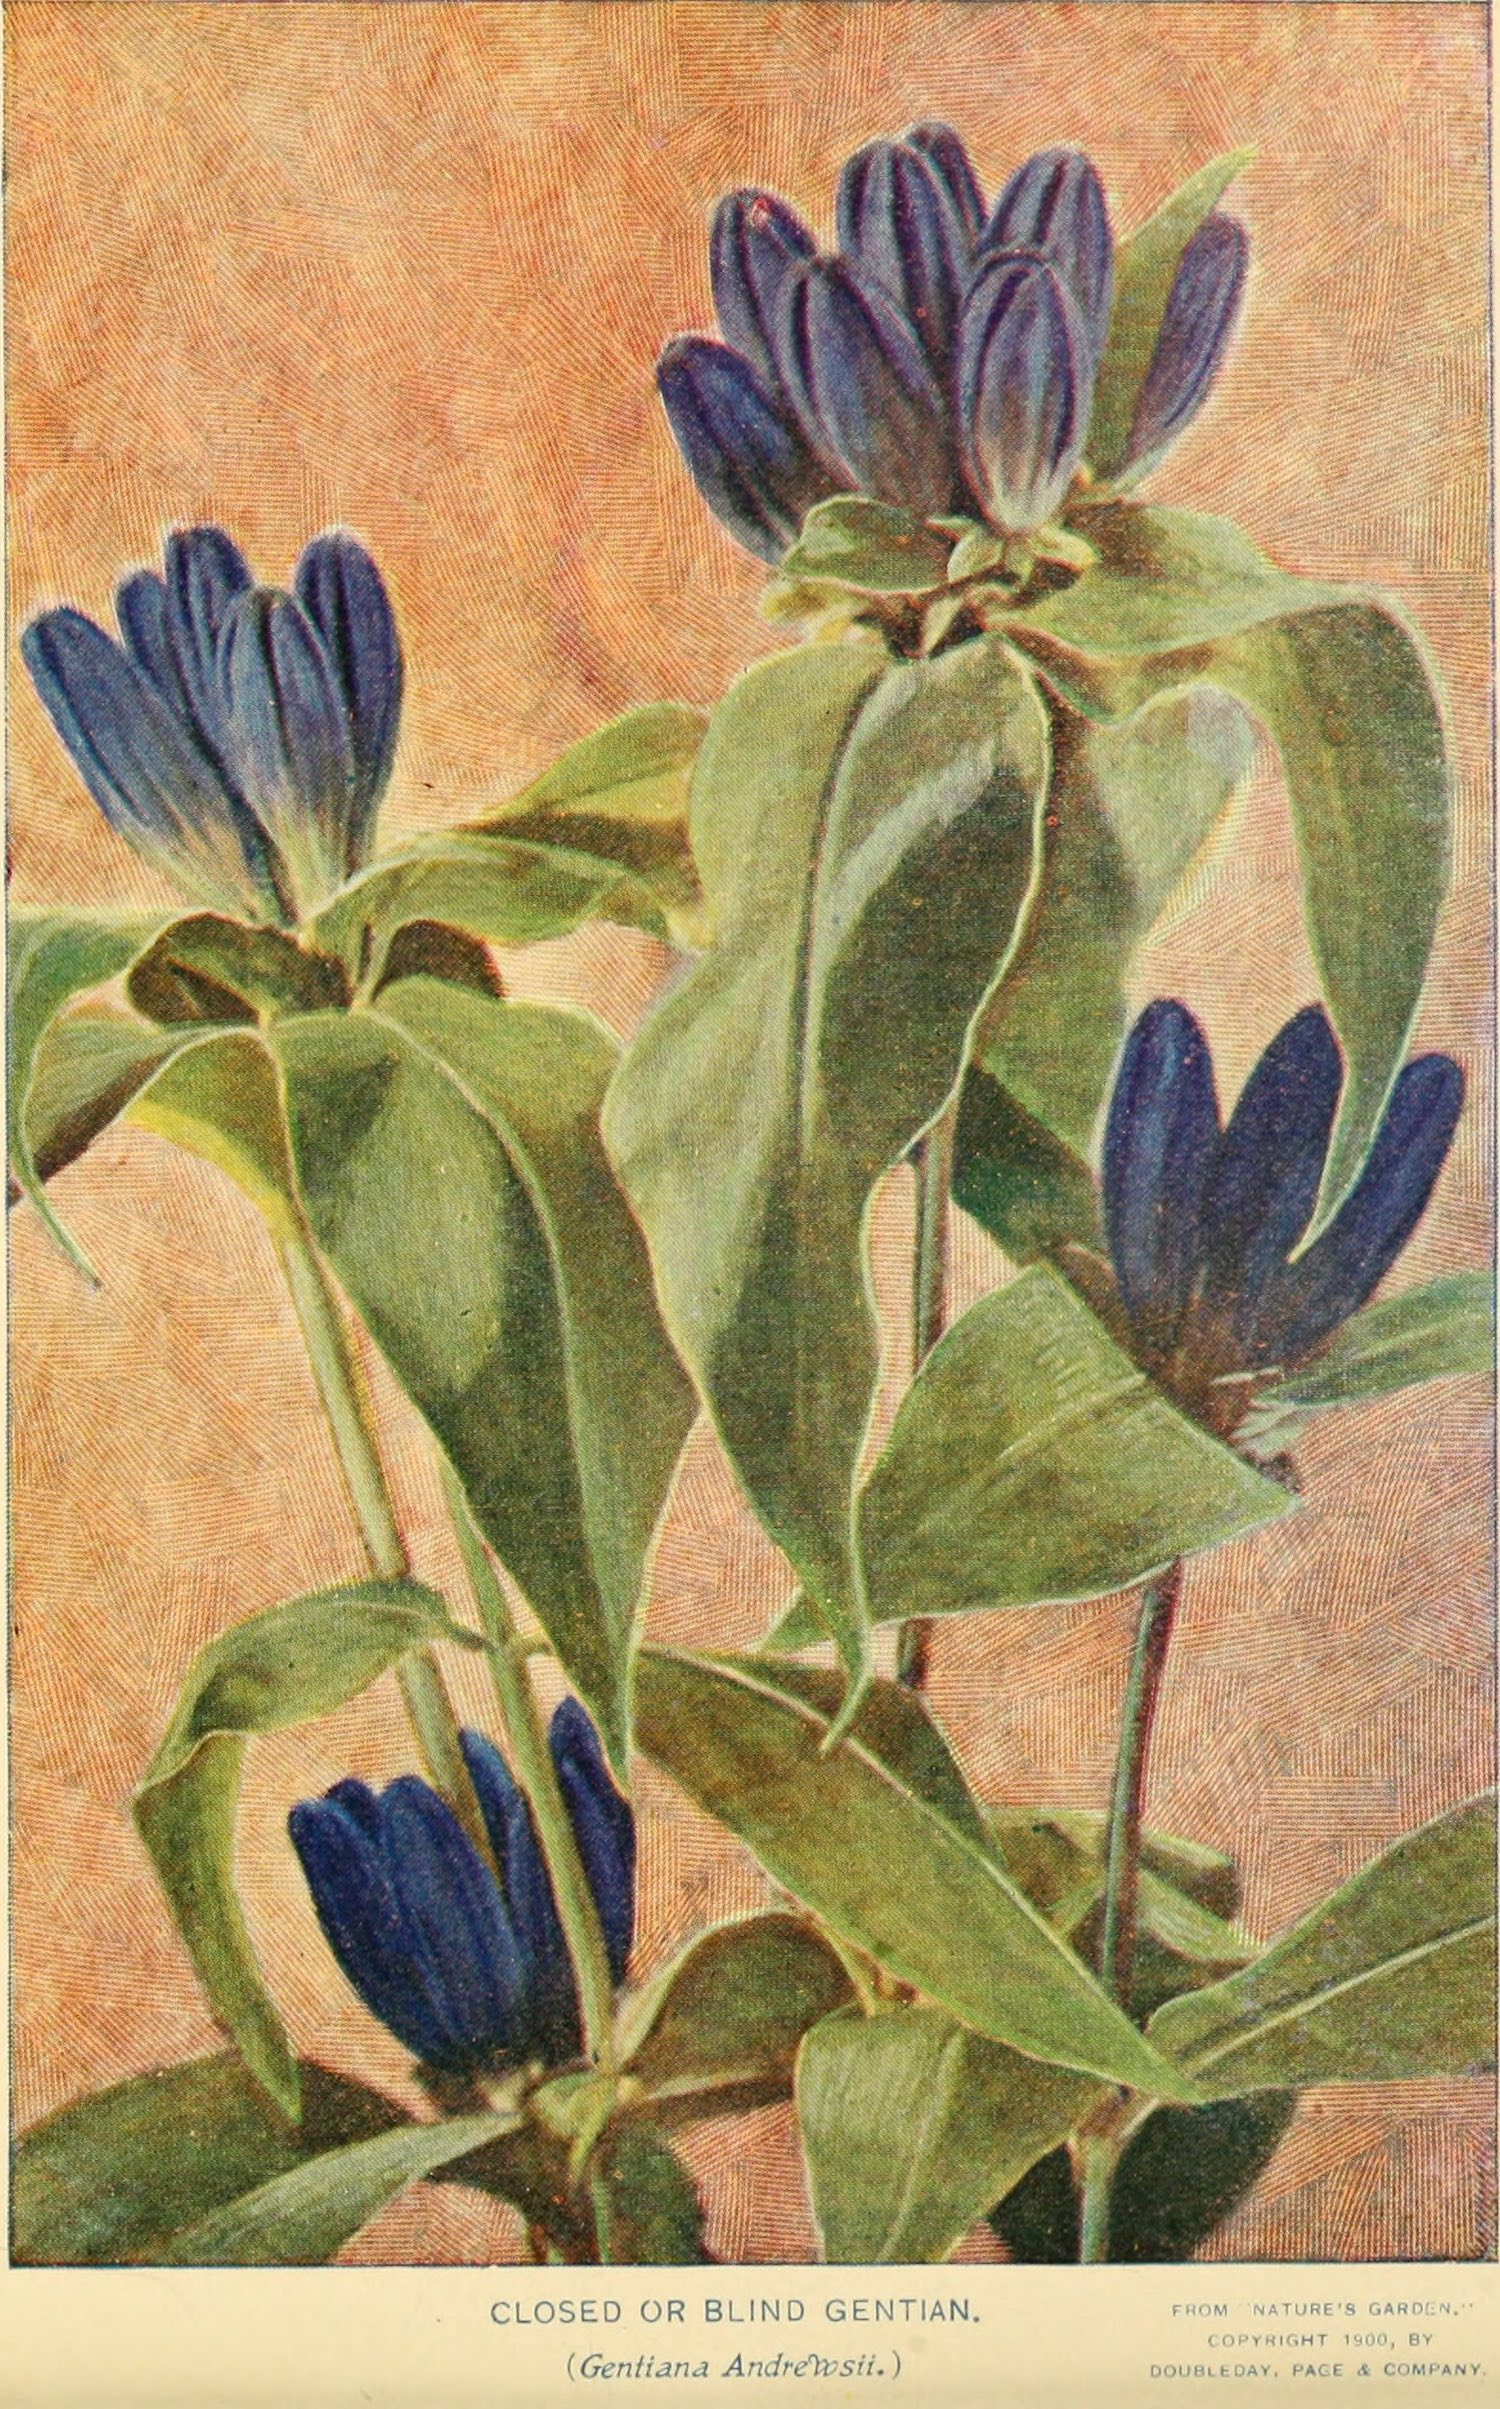 Closed Gentian botanical illustration circa 1900.